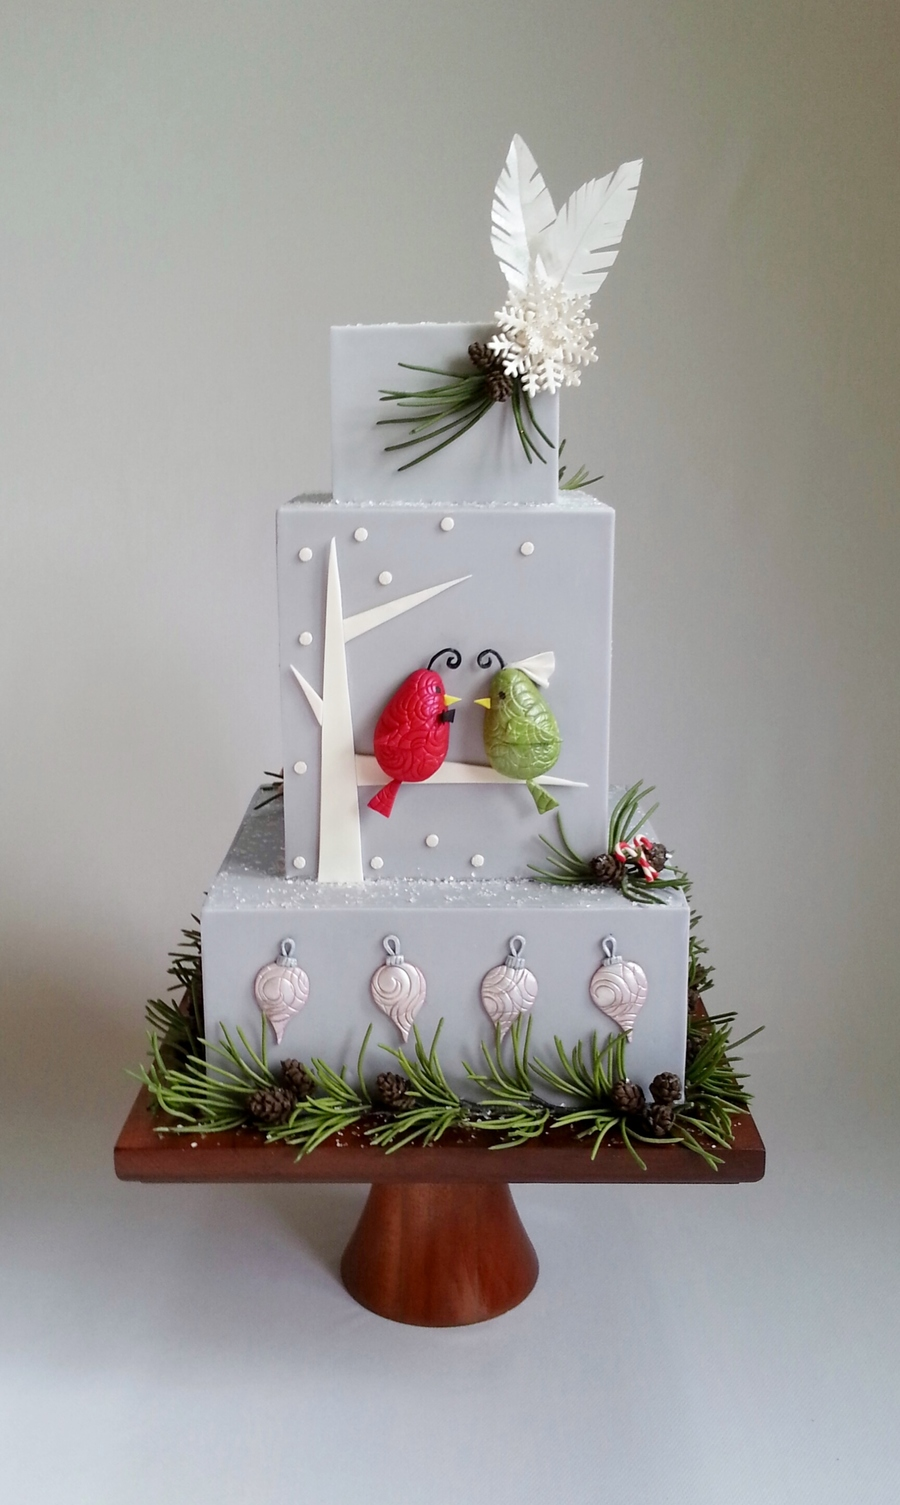 This Was My Cake For Cake Cental Magazine Vol 4 Issue 12 The Theme Was Holiday Wedding Birds